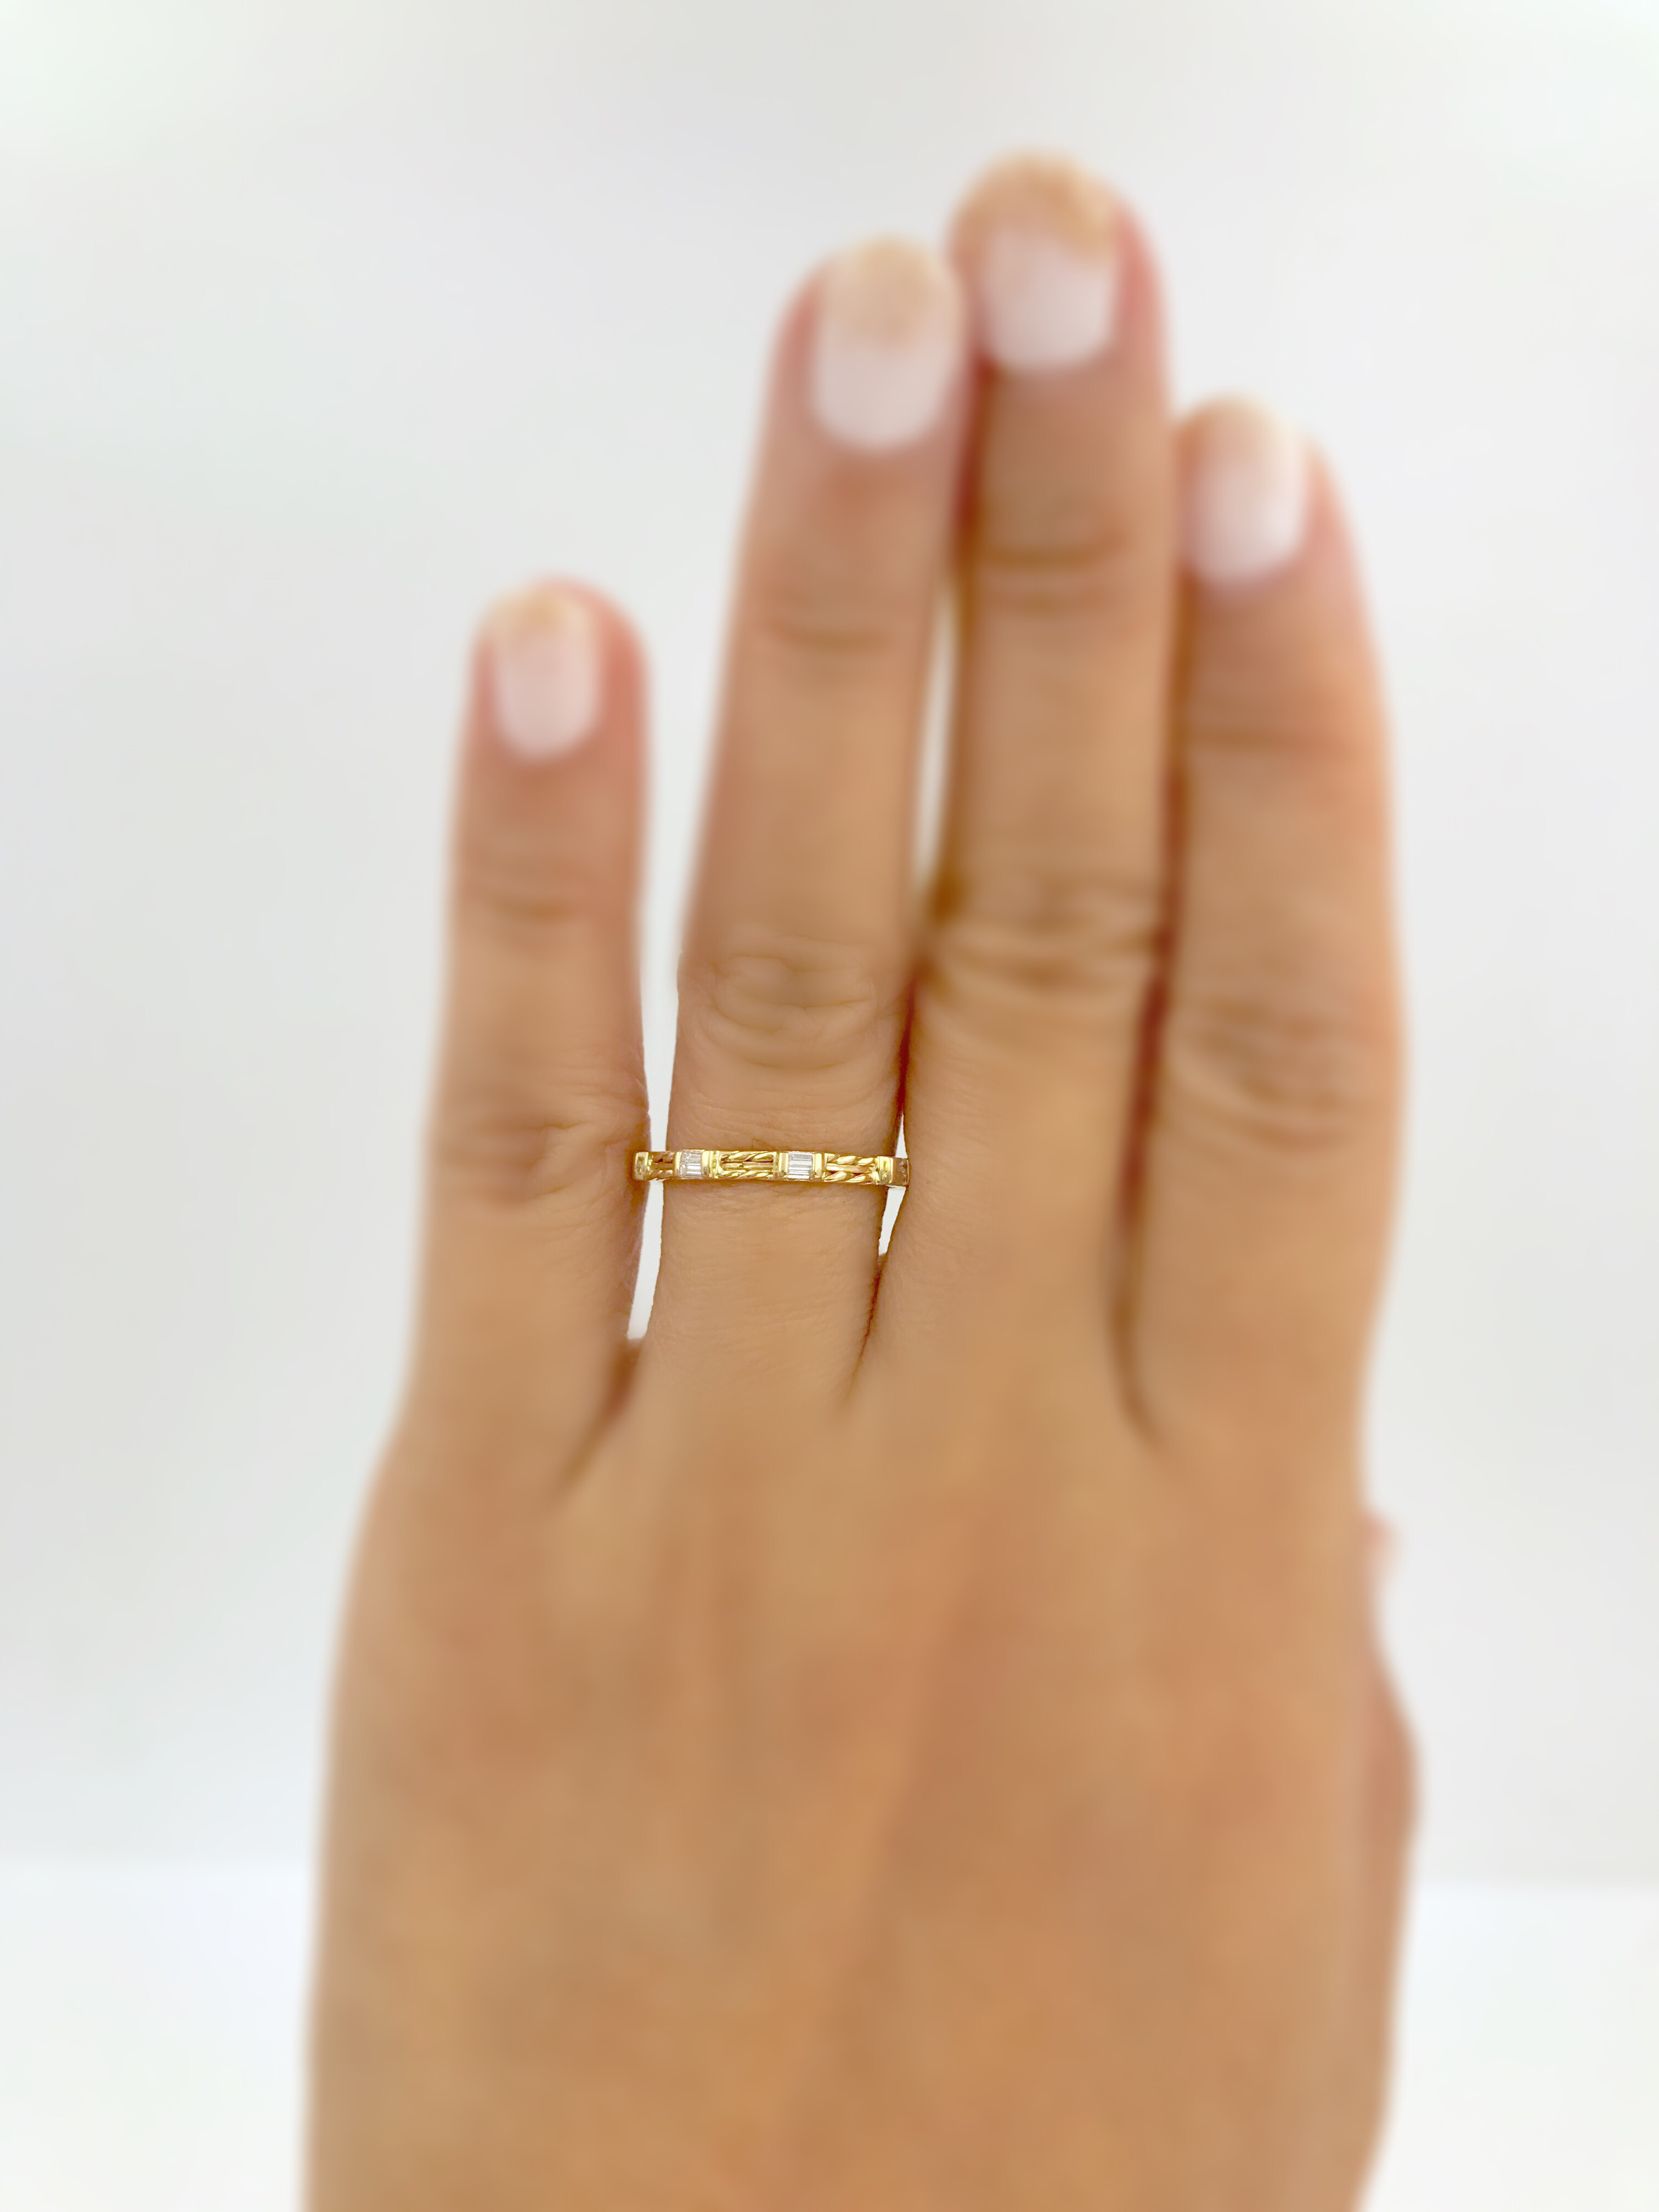 18k Gold Double Baguette Diamond Wedding Band Stacking Ring